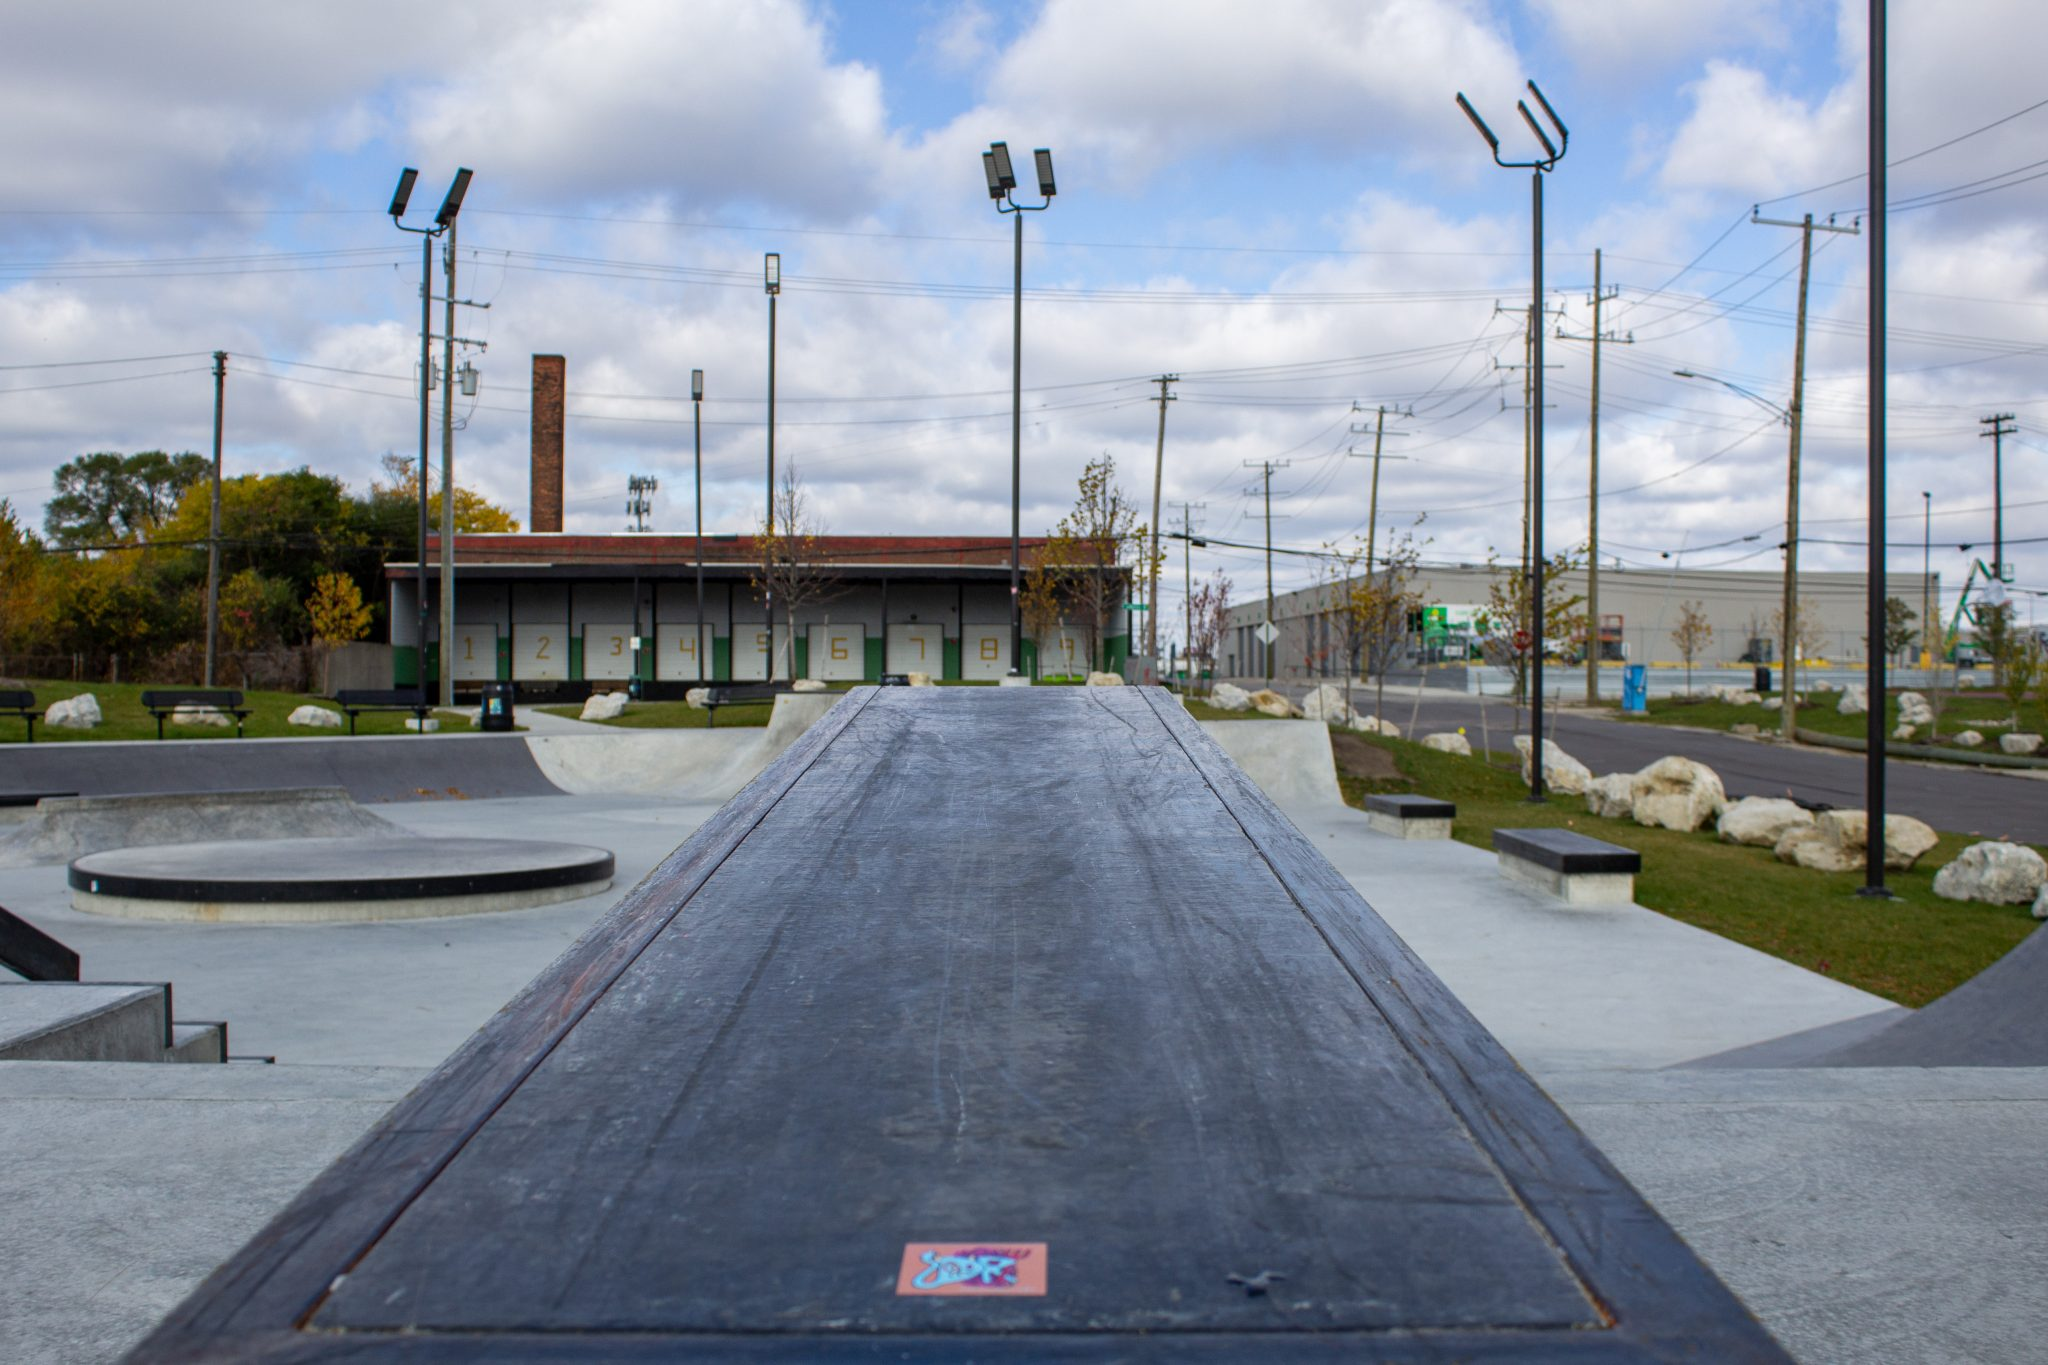 THE WIG A VIEW OF THE RIVERSIDE SKATEPARK THAT WAS DESIGNED BY COMMUNITY PUSH. PHOTO JOHN BOZICK